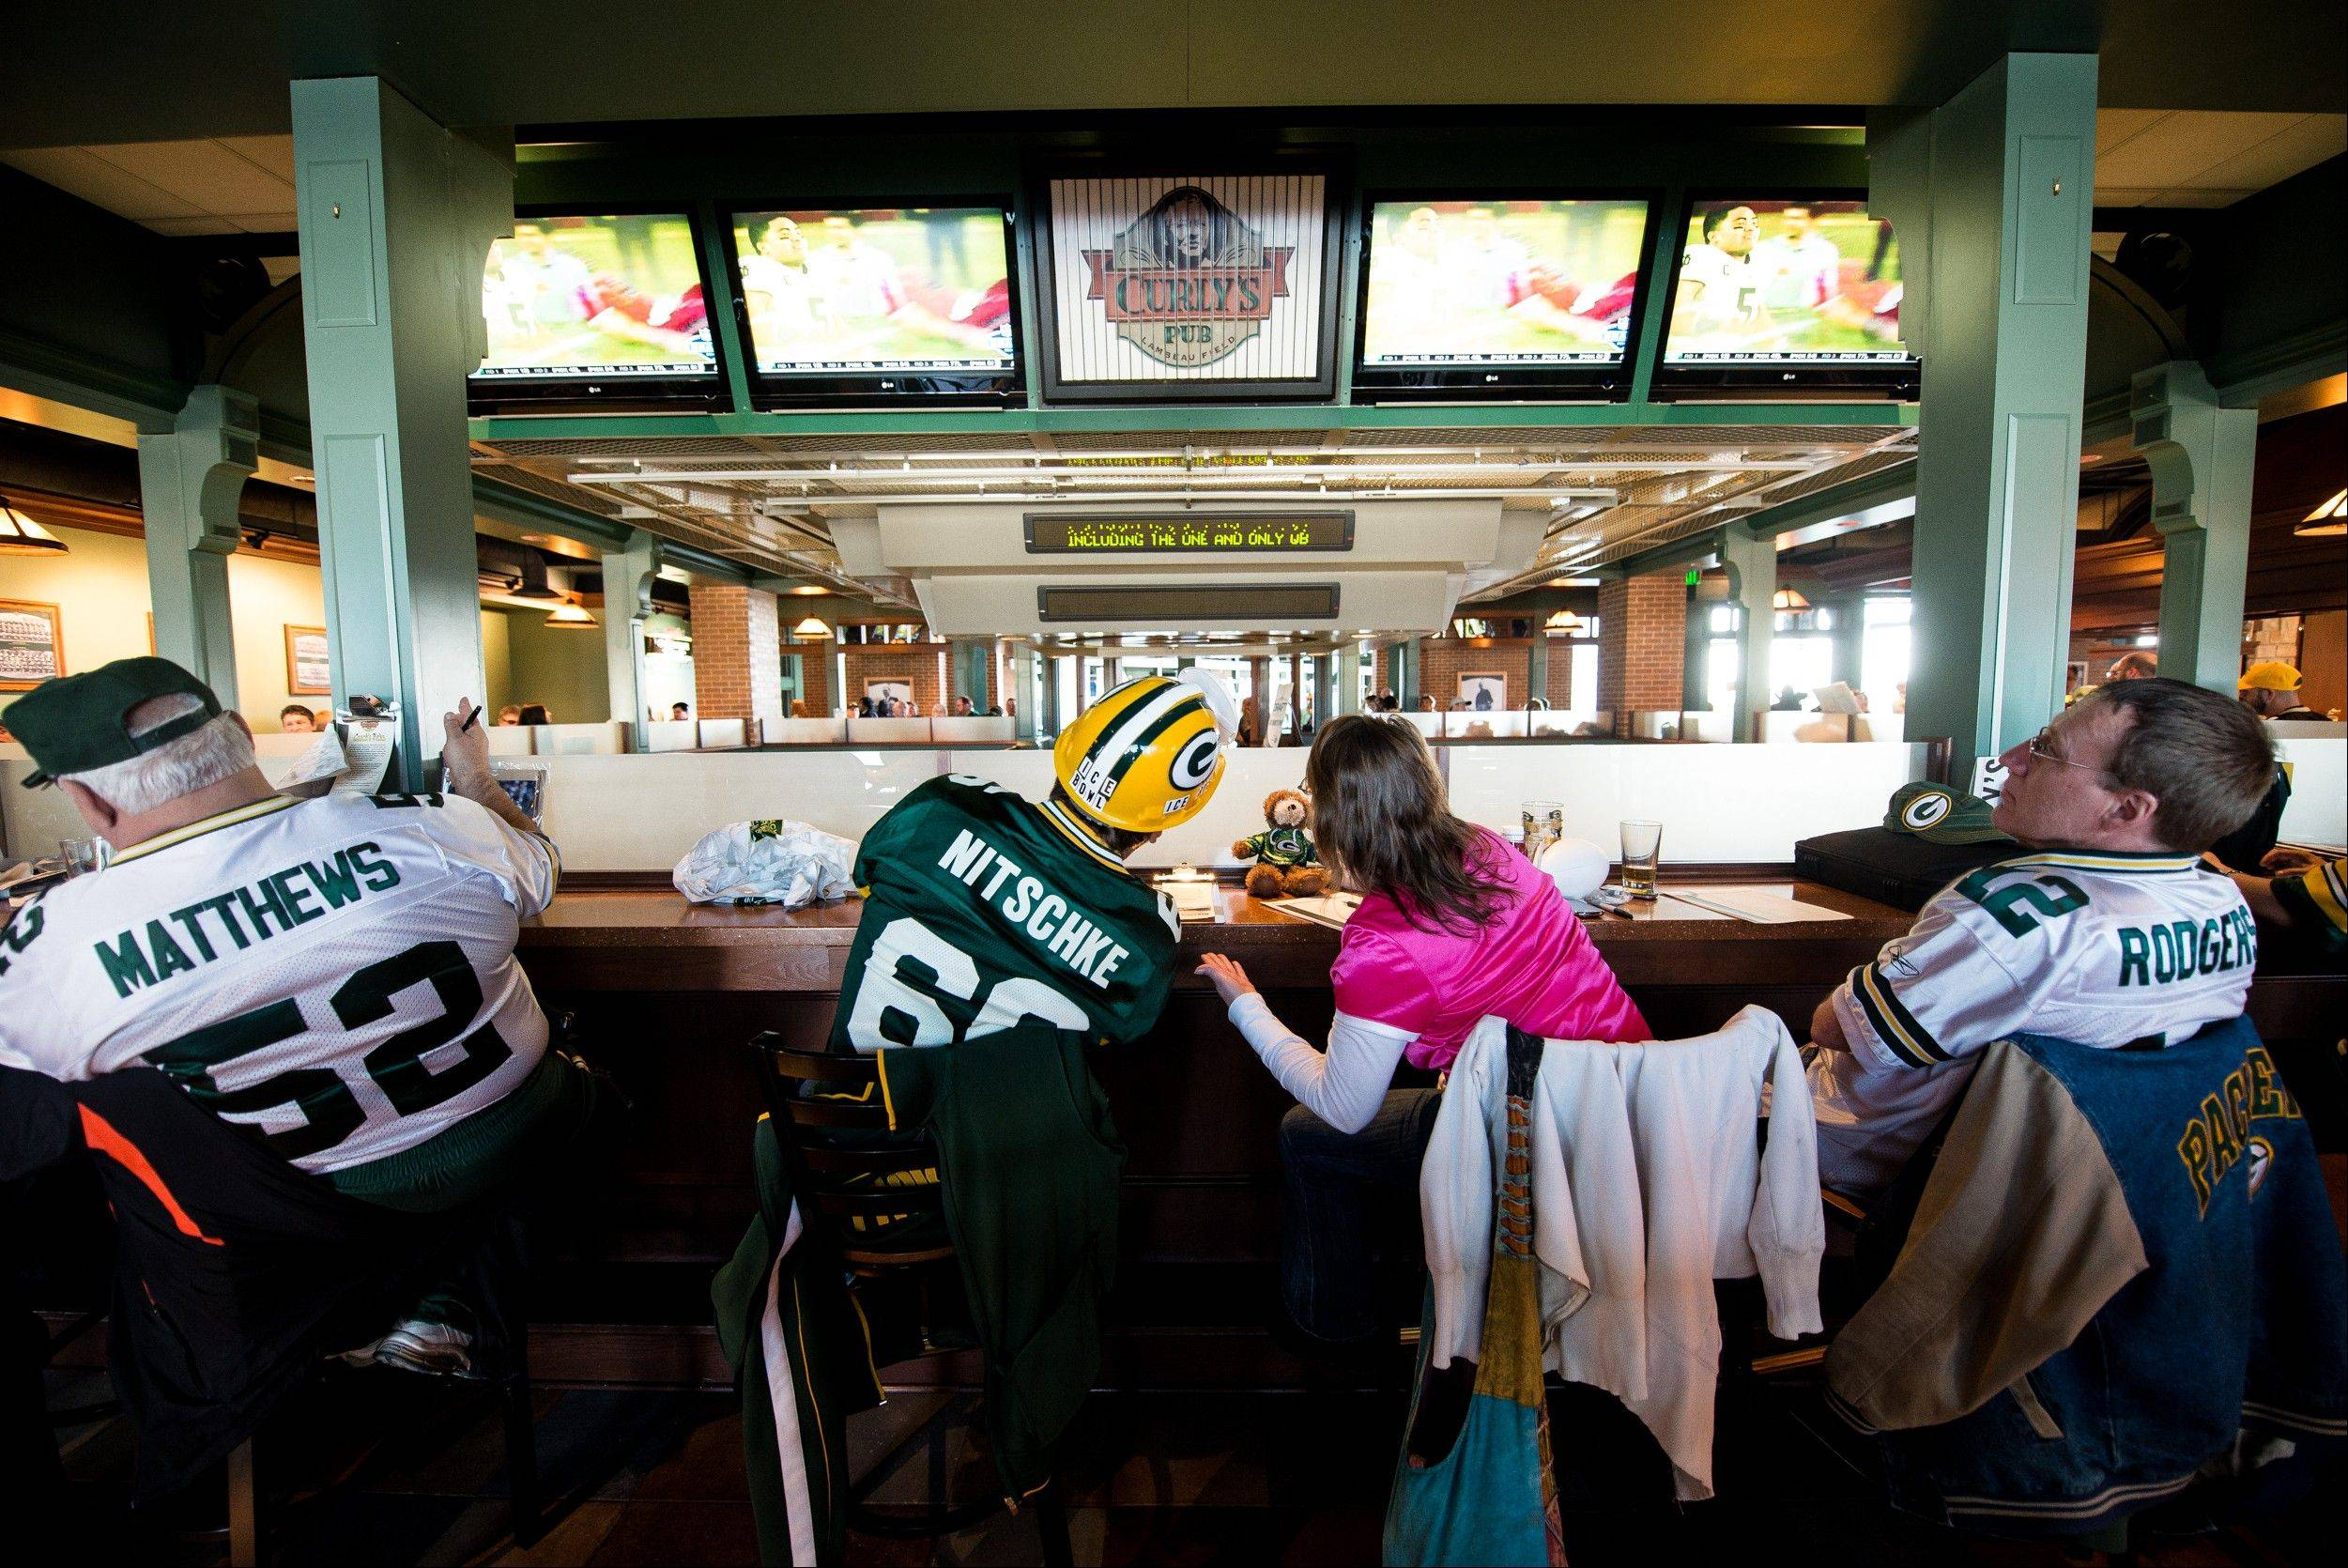 Fans gather at Curly's Pub to watch a televised broadcast of the NFL football draft at Lambeau Field in Green Bay, Wis., Thursday, April 25, 2013.